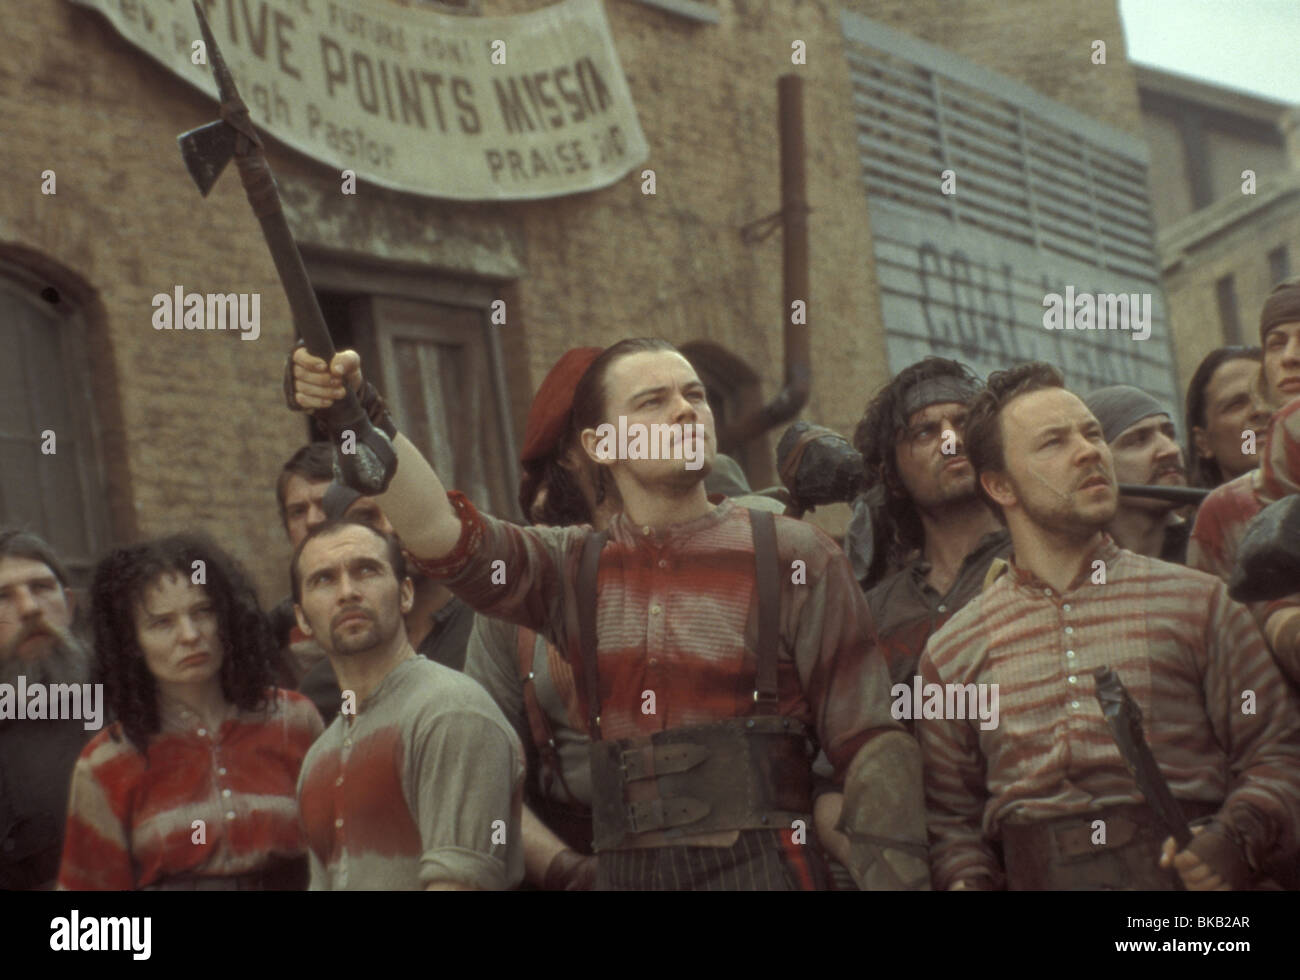 GANGS OF NEW YORK (2002) LEONARDO DICAPRIO GONY 001 7 - Stock Image